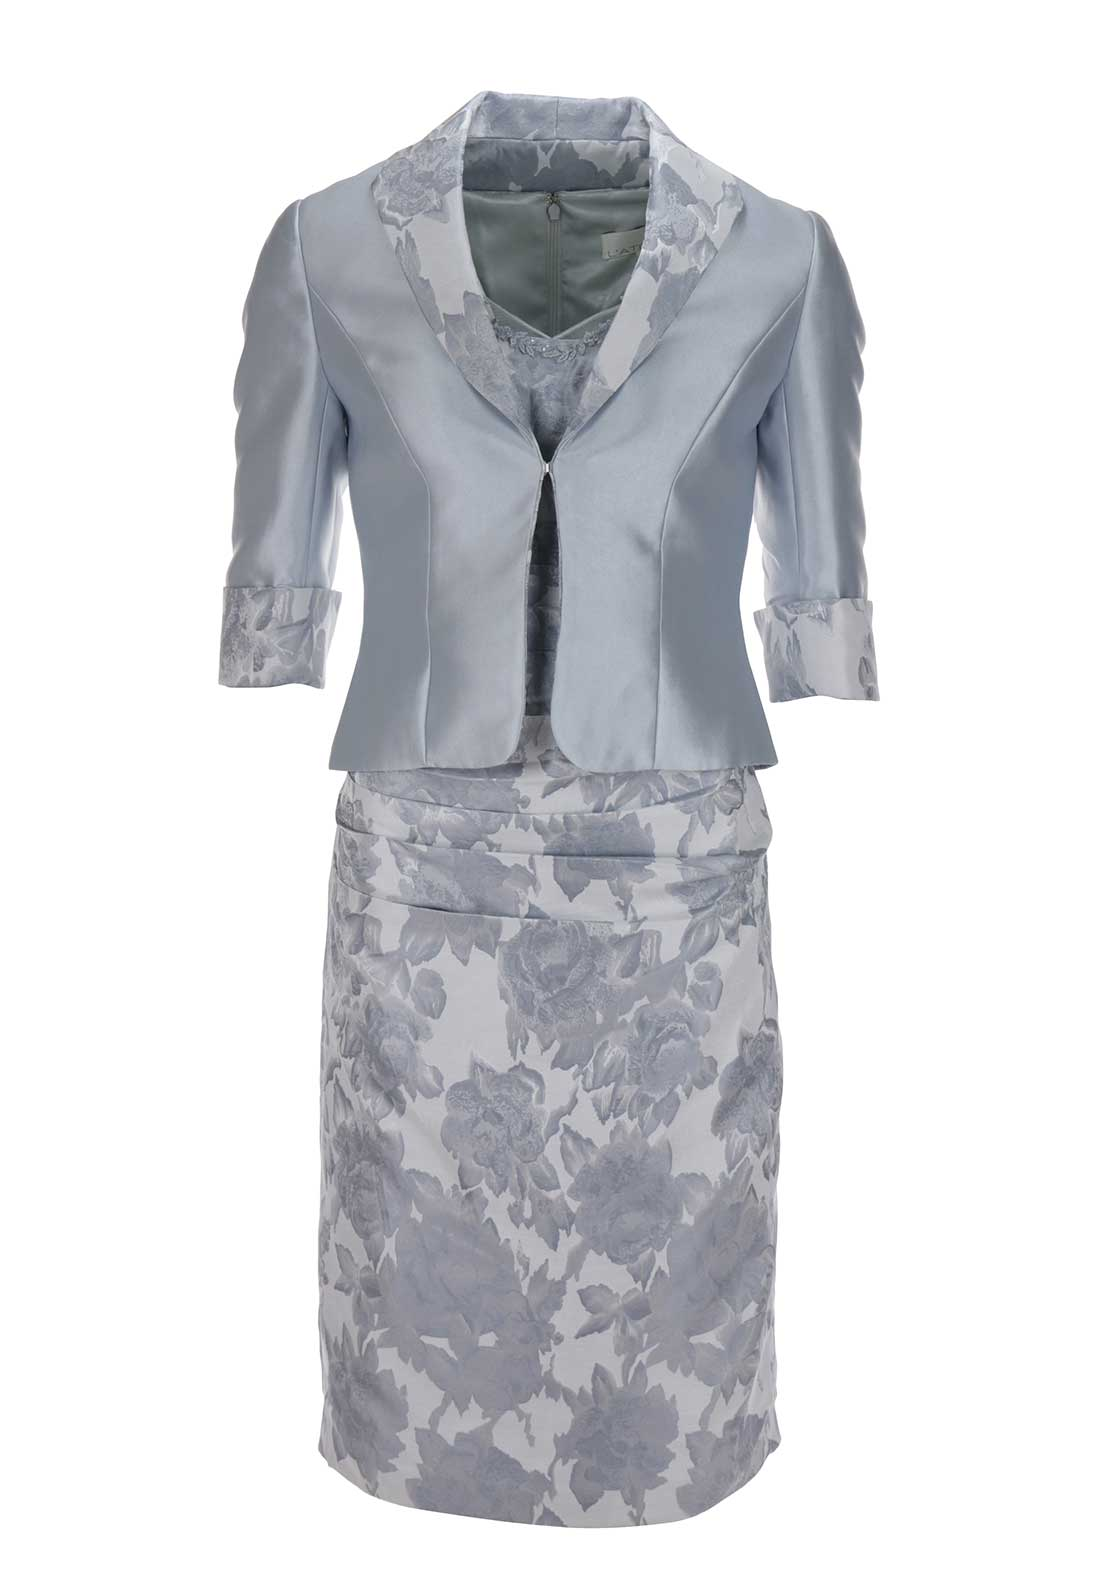 Latelier Occasionwear Dress and Jacket, Silver